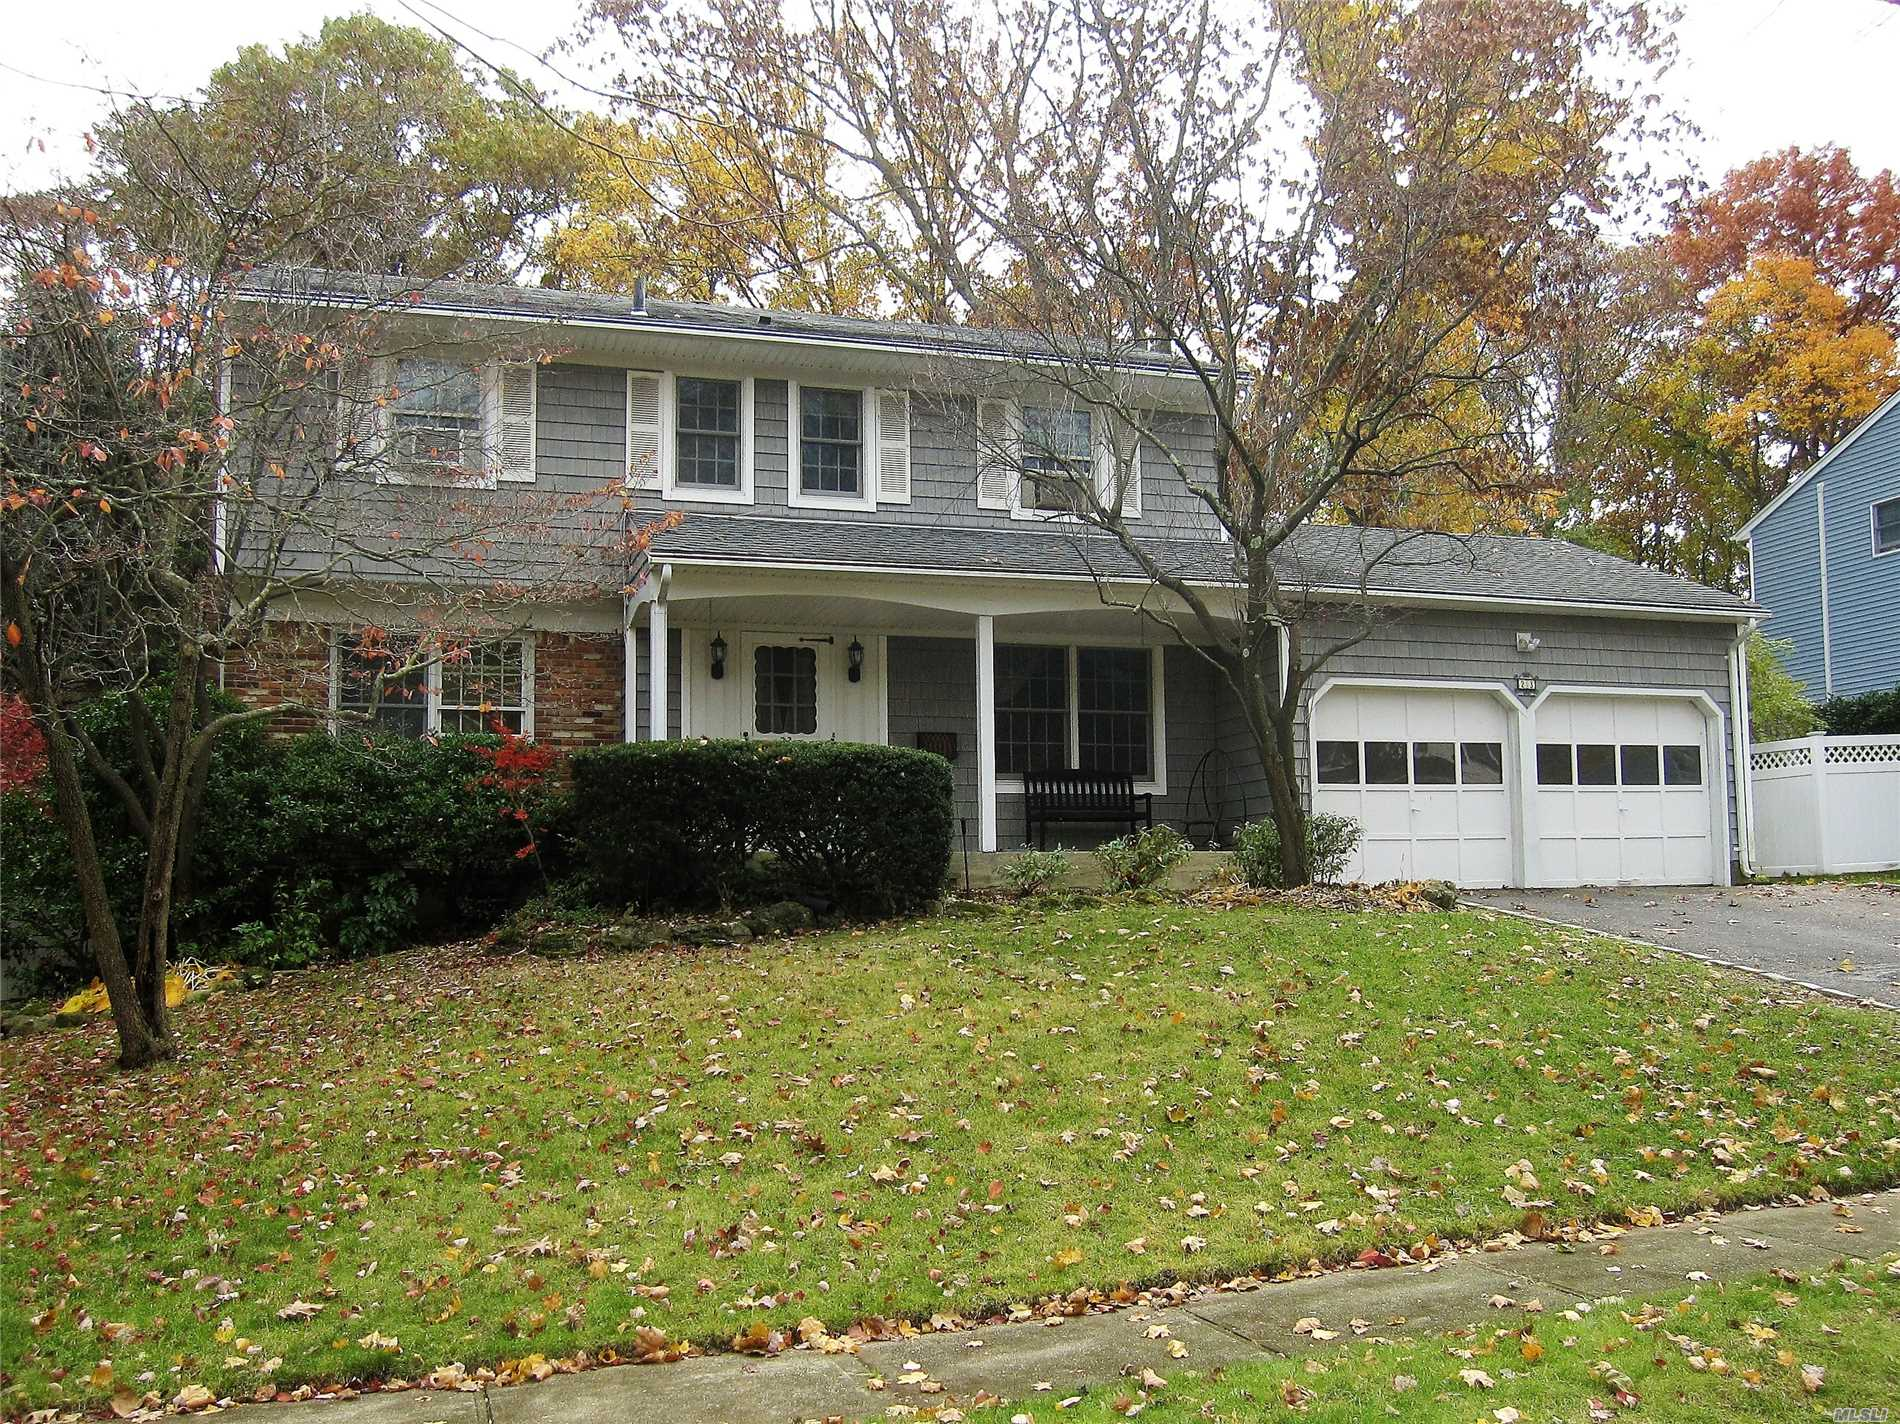 Newly Renovated Colonial House In The Very Quite And Convenient Location, This Rental Property Has Bright Living Room And Formal Dining Room, Eik , Family Den W/Fireplace, Slide Door Leads To Rear Wood Deck. Hardwood Floor Throughout, Freshly Painted Entire Interiors, Newly Installed High-Grade Ceramic Floor In The Basement. 10 Minute Walk To Lirr Station. Syosset Schools.